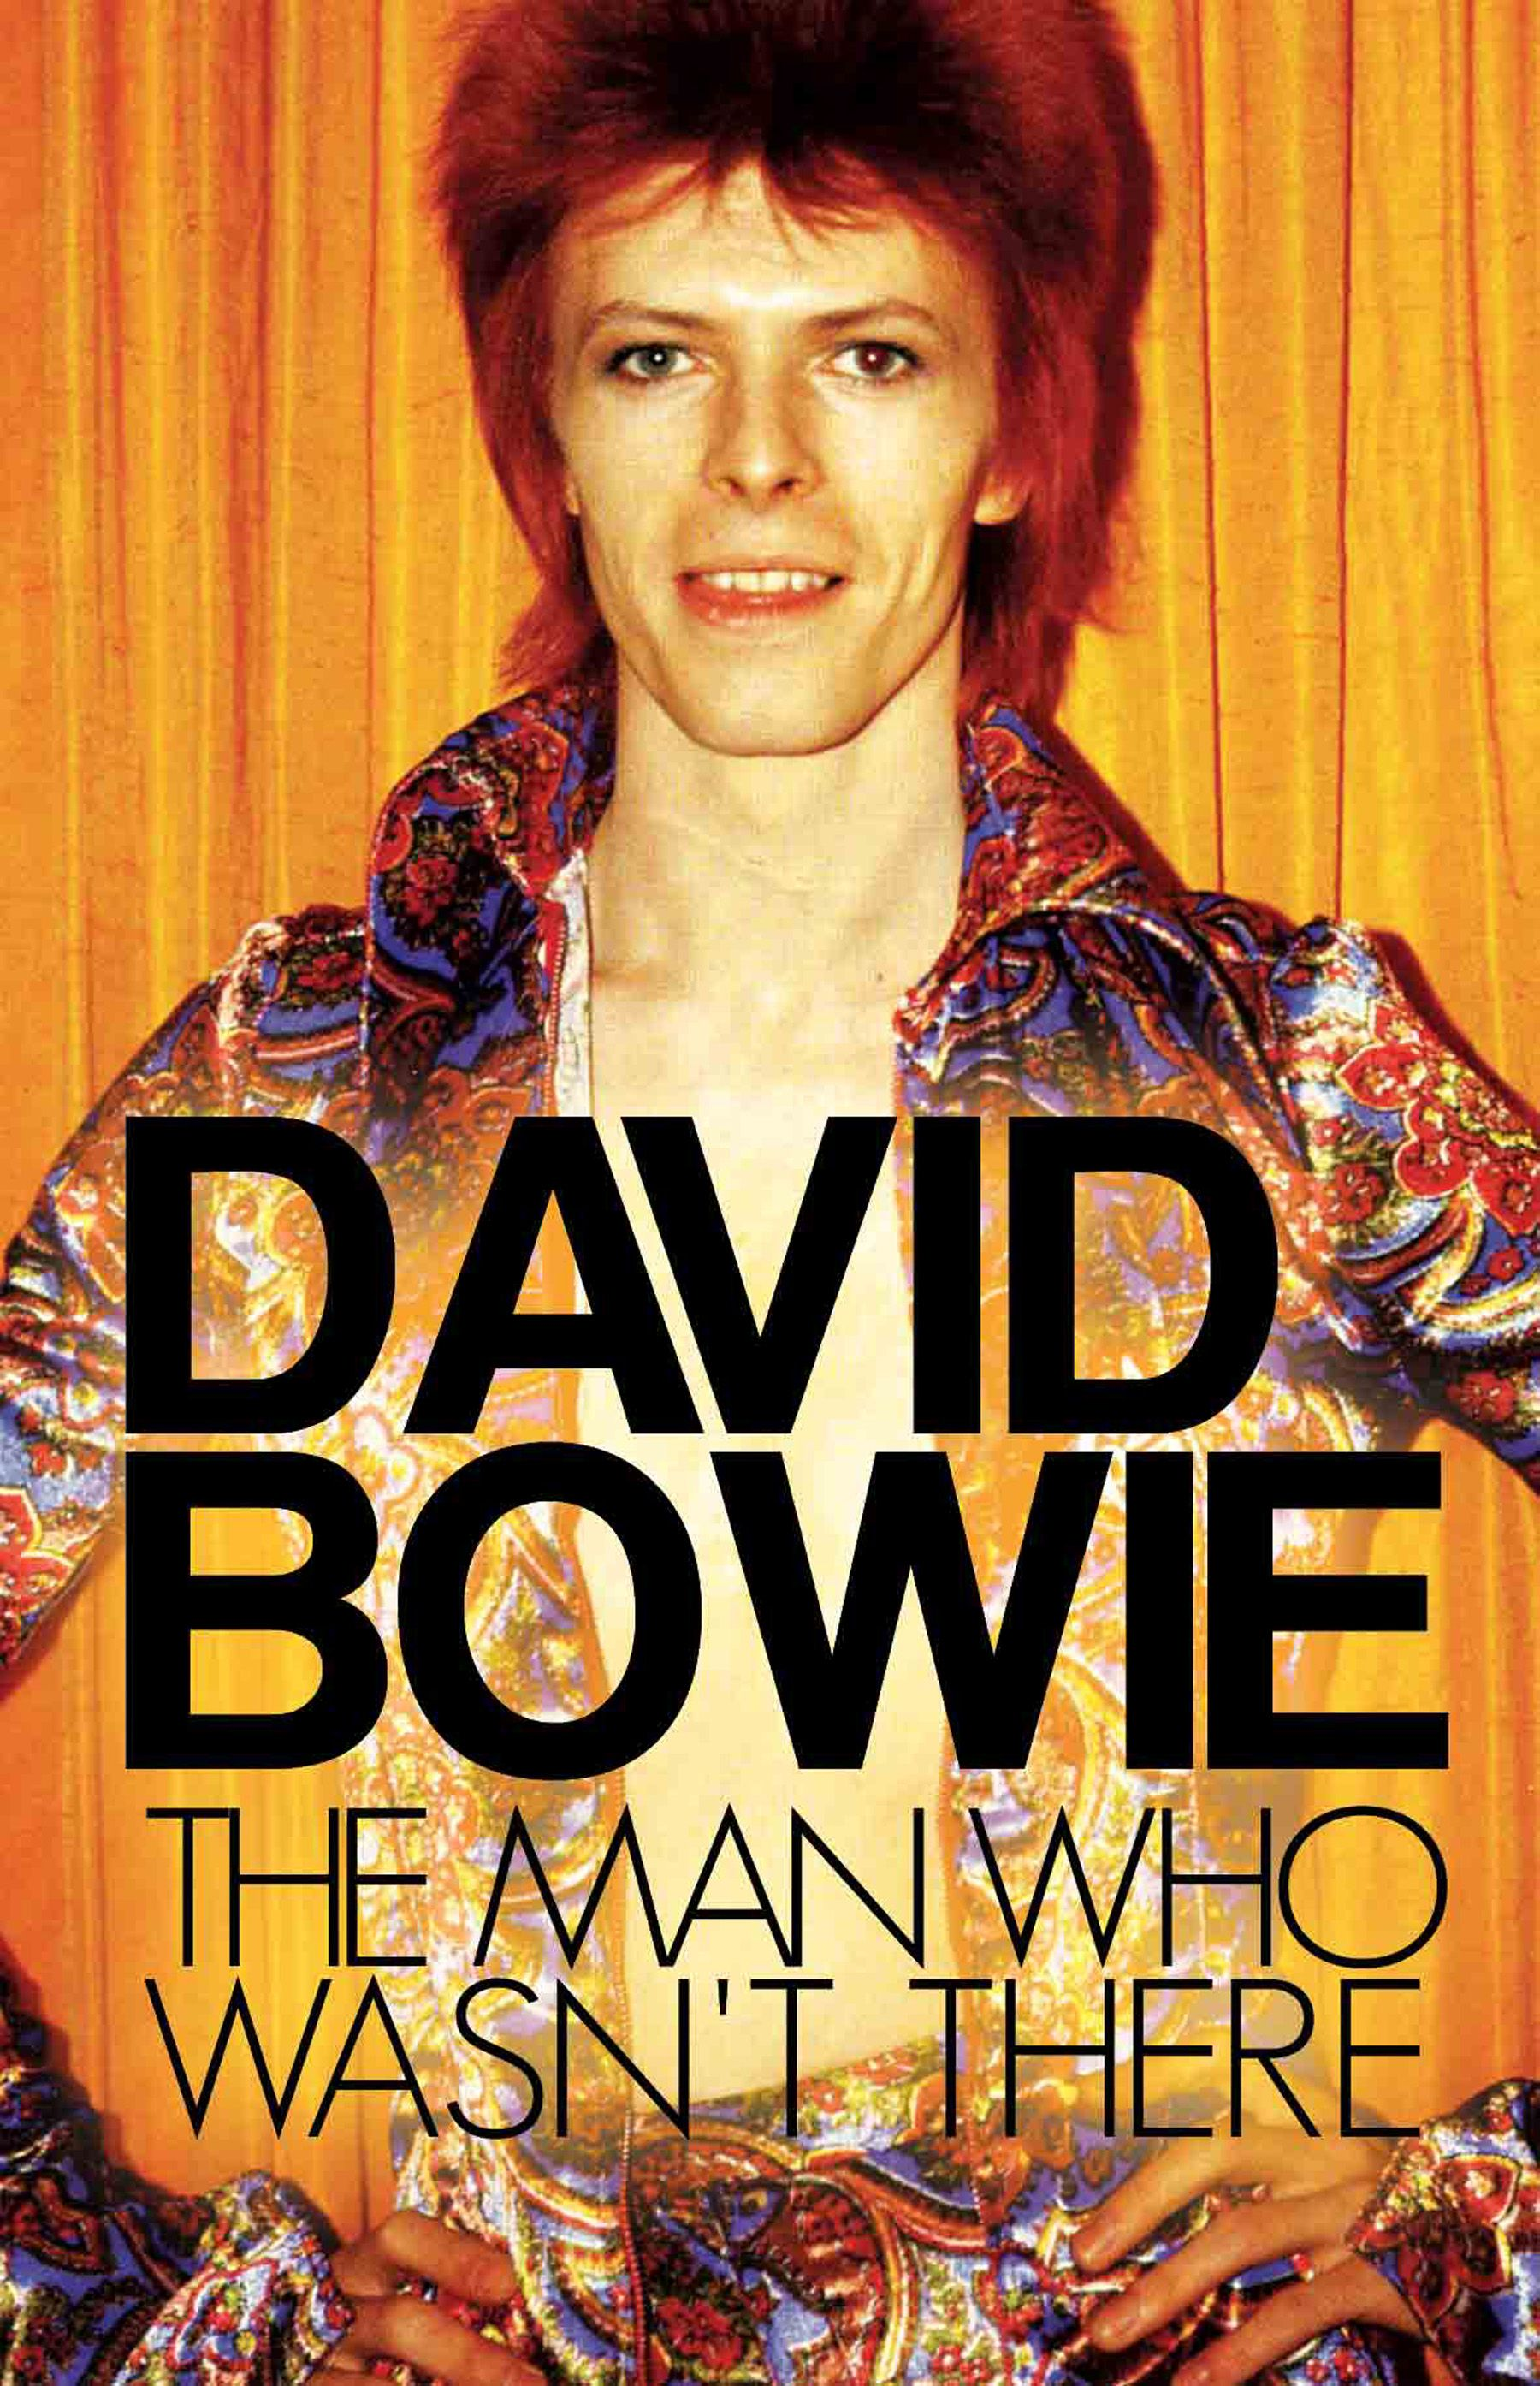 David Bowie: The Man Who Wasn't There